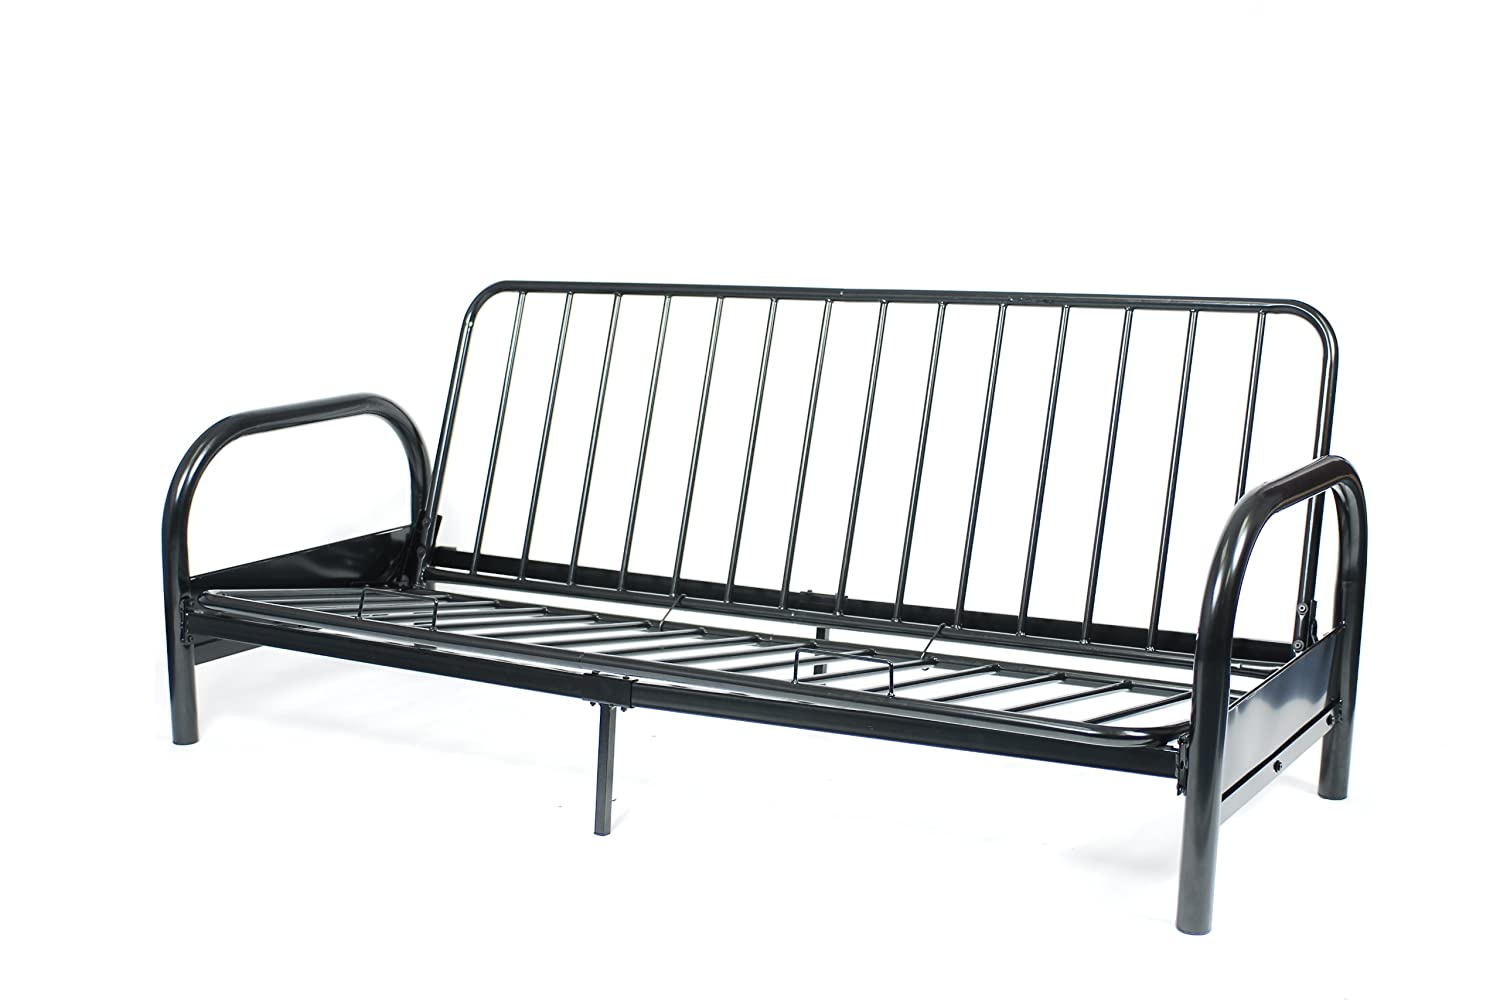 futon frame sealysofaconvertibles category aux archives white com tobacco futons sofaconvertibles